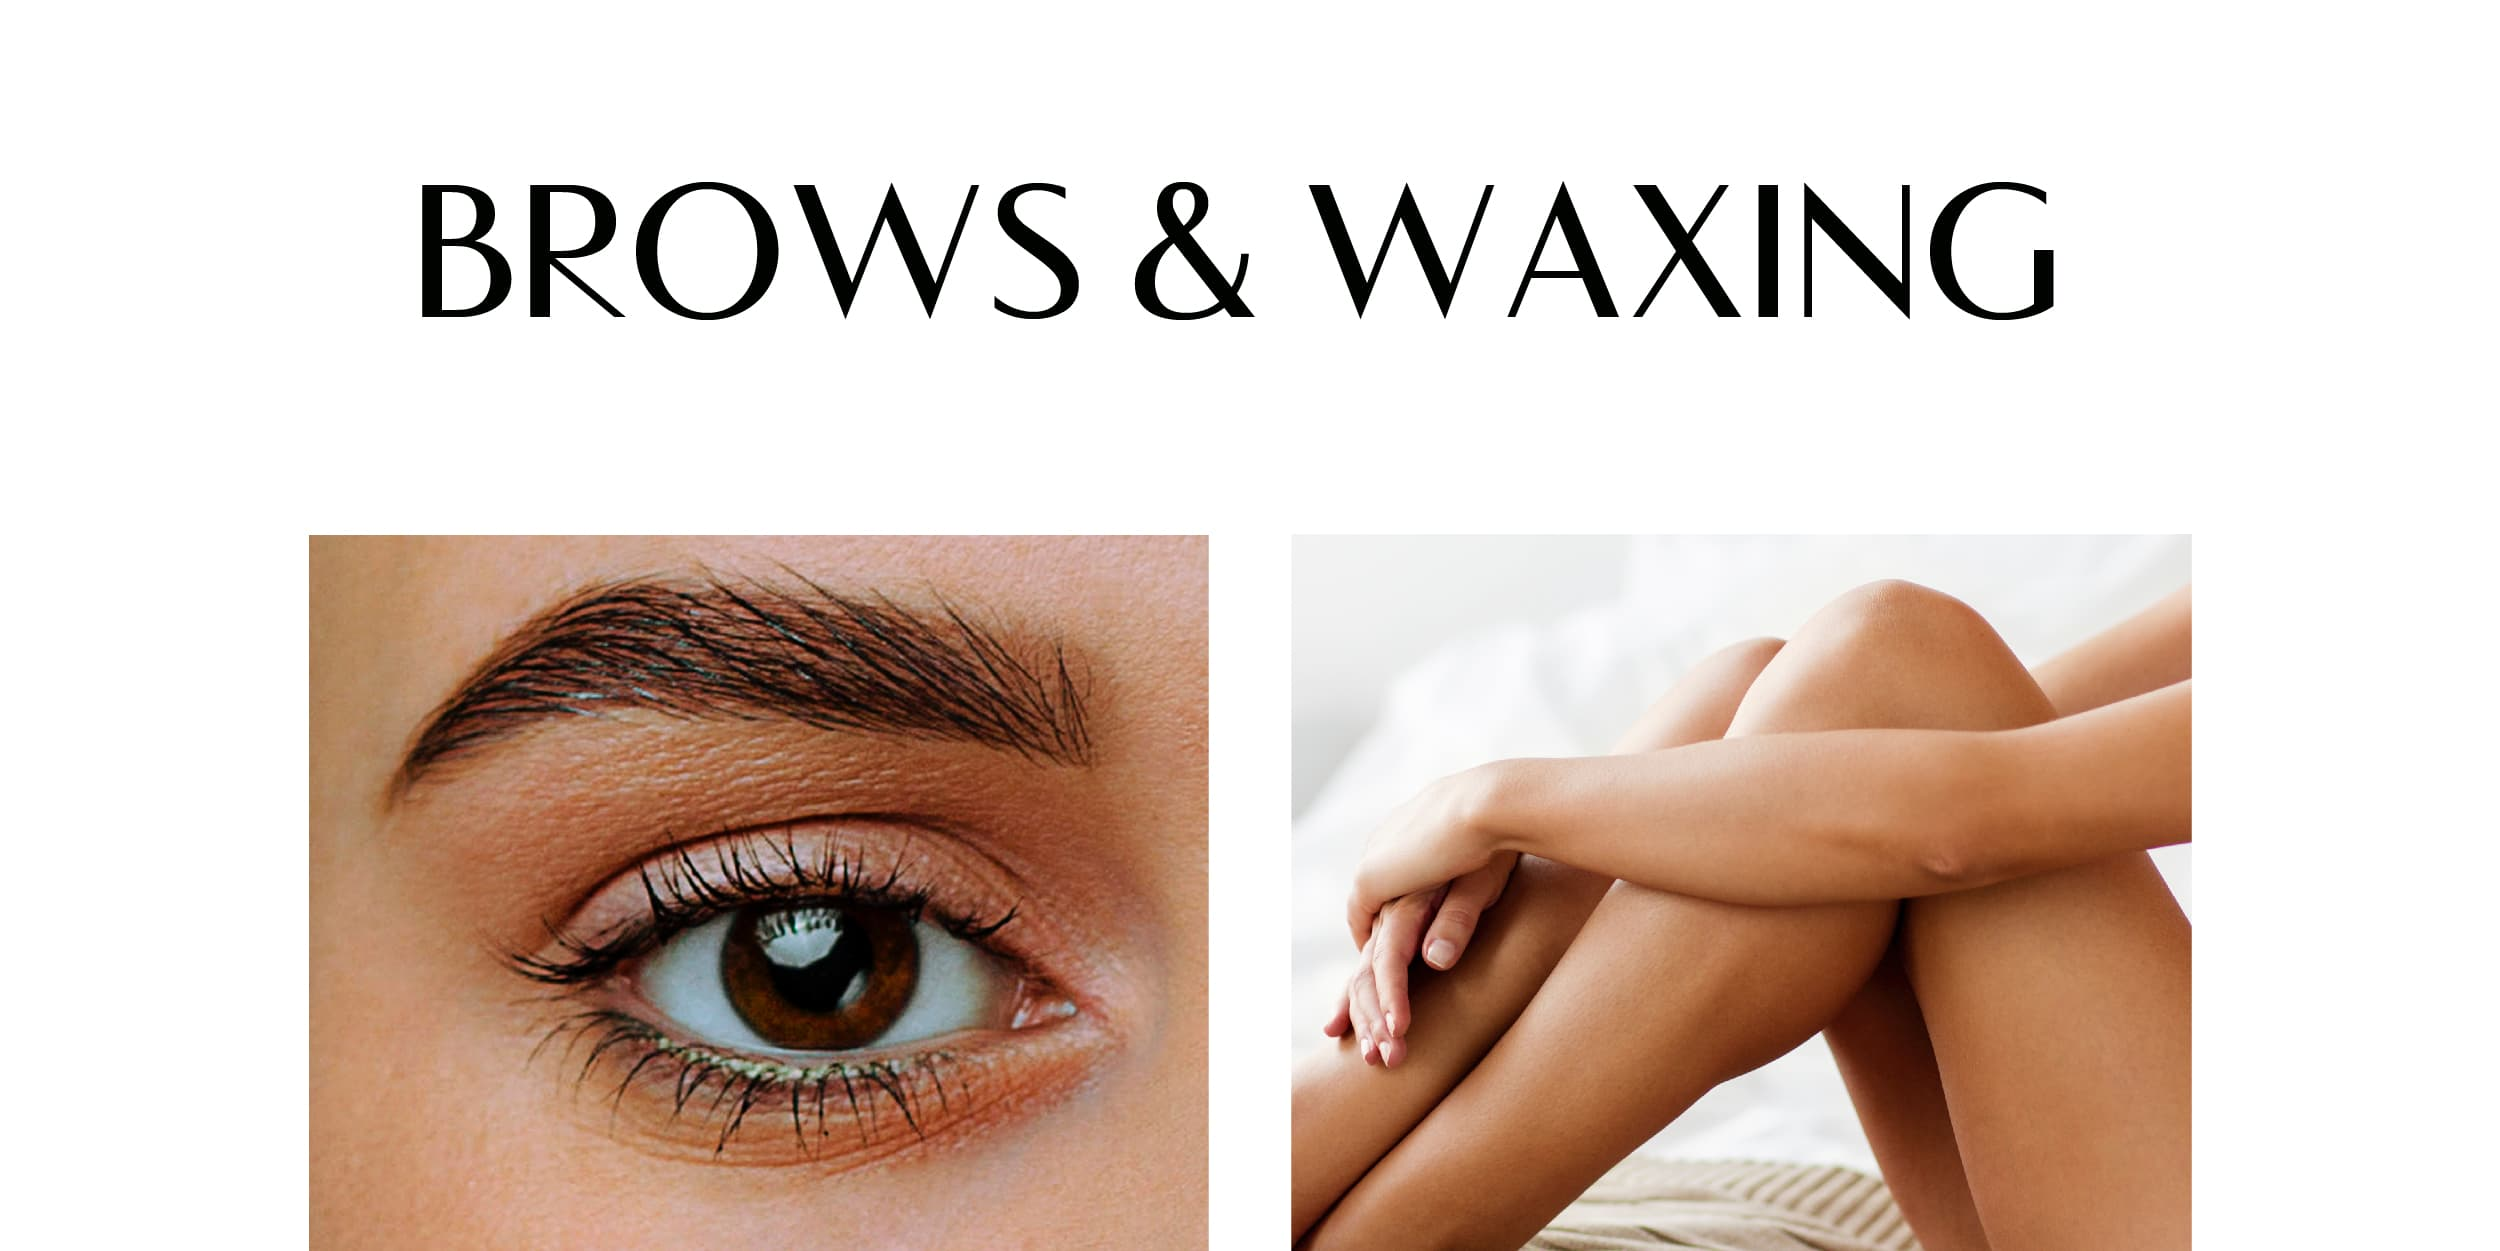 Brows & Waxing